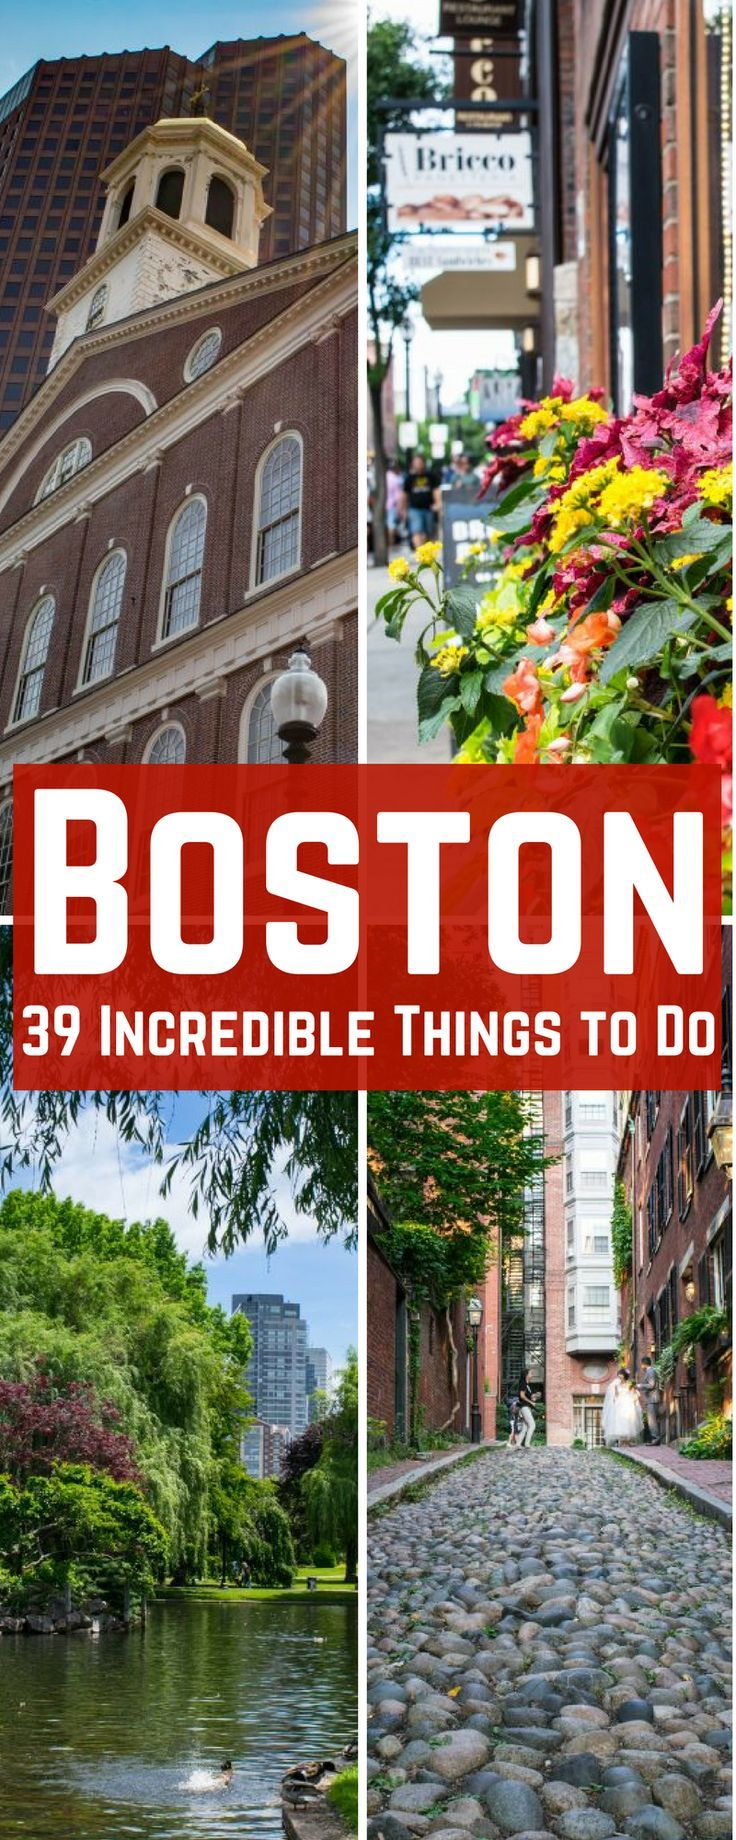 55 Best Things To Do In Boston Travel Tips Boston Things To